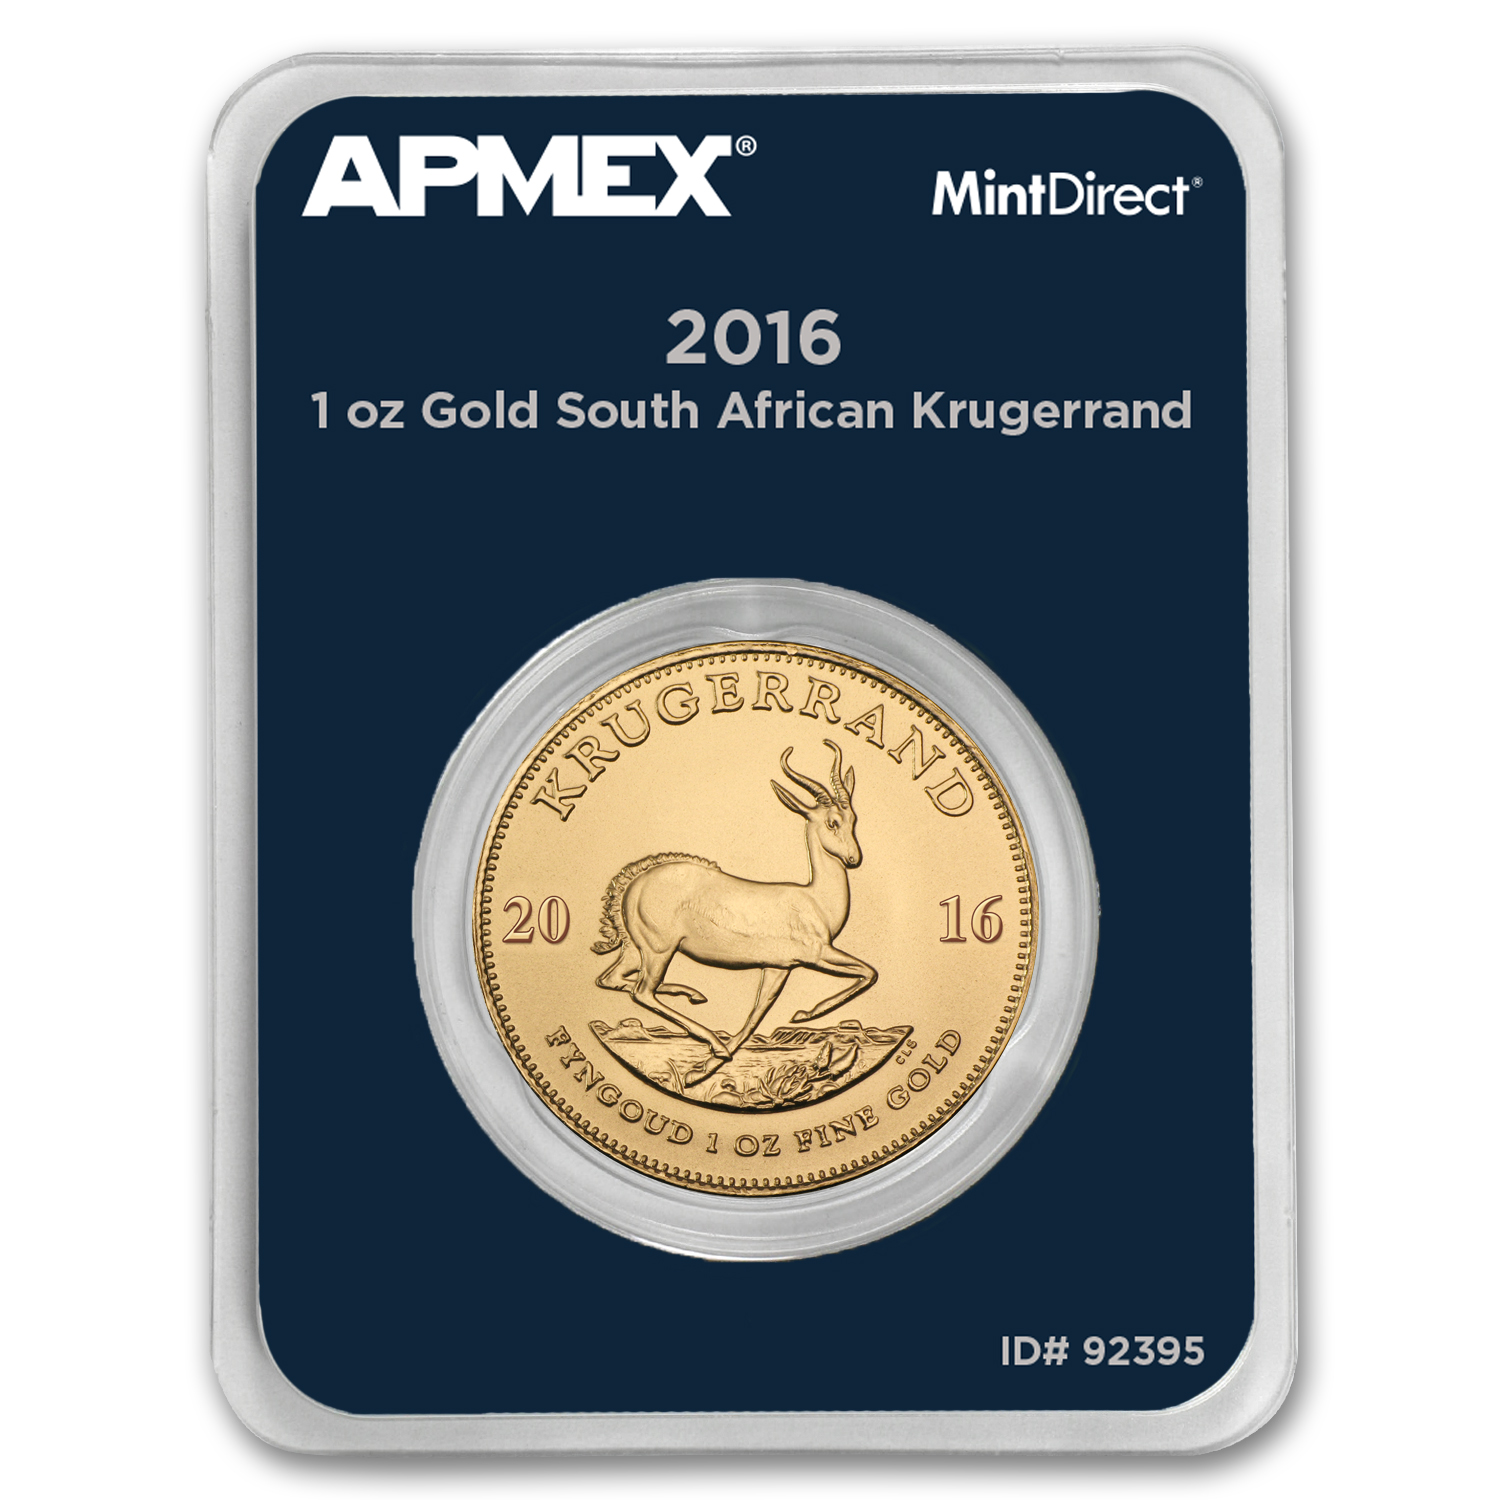 2016 South Africa 1 oz Gold Krugerrand (MintDirect® Single)